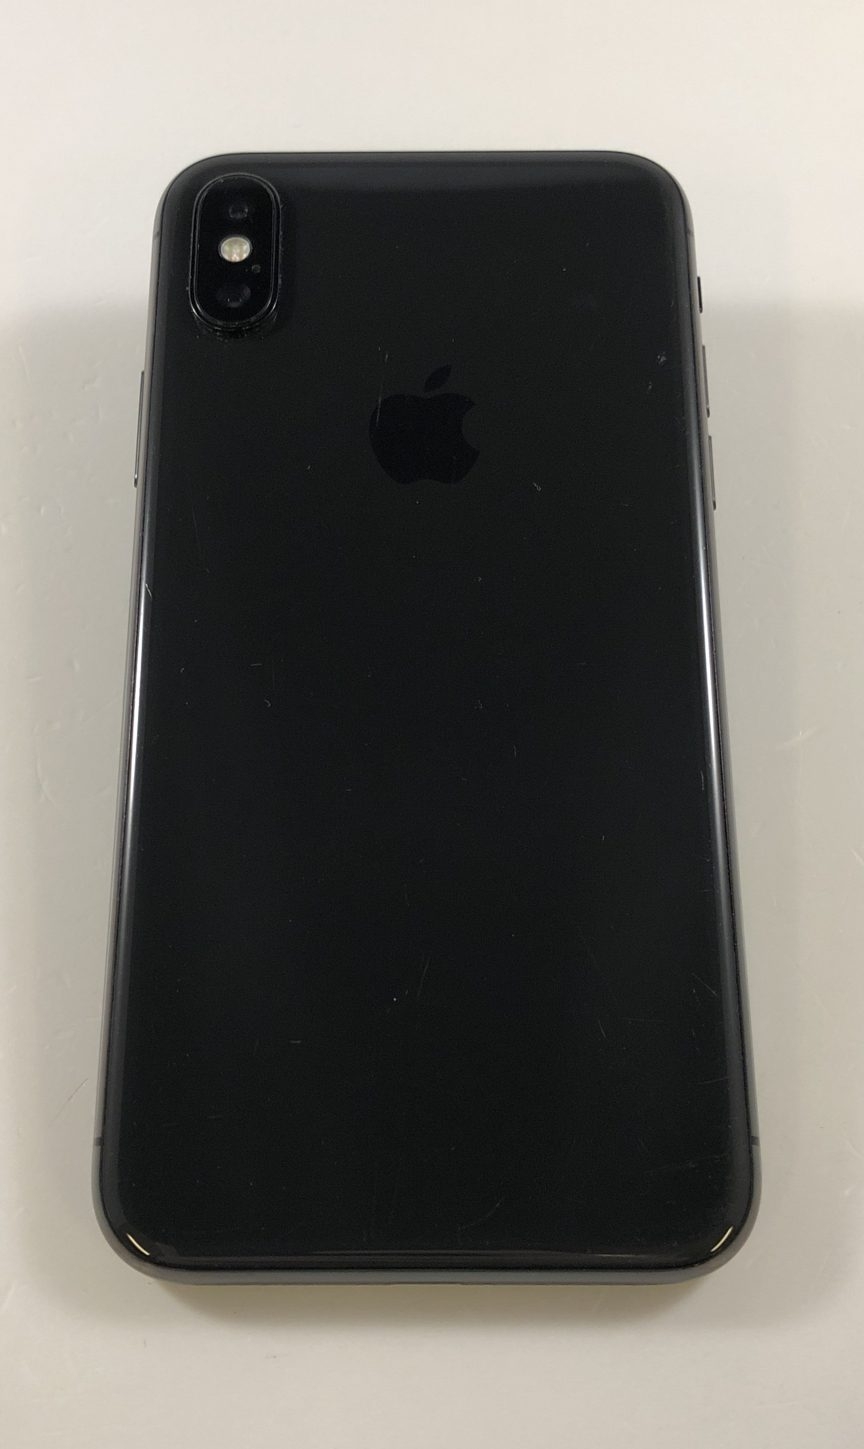 iPhone X 64GB, 64GB, Space Gray, bild 2